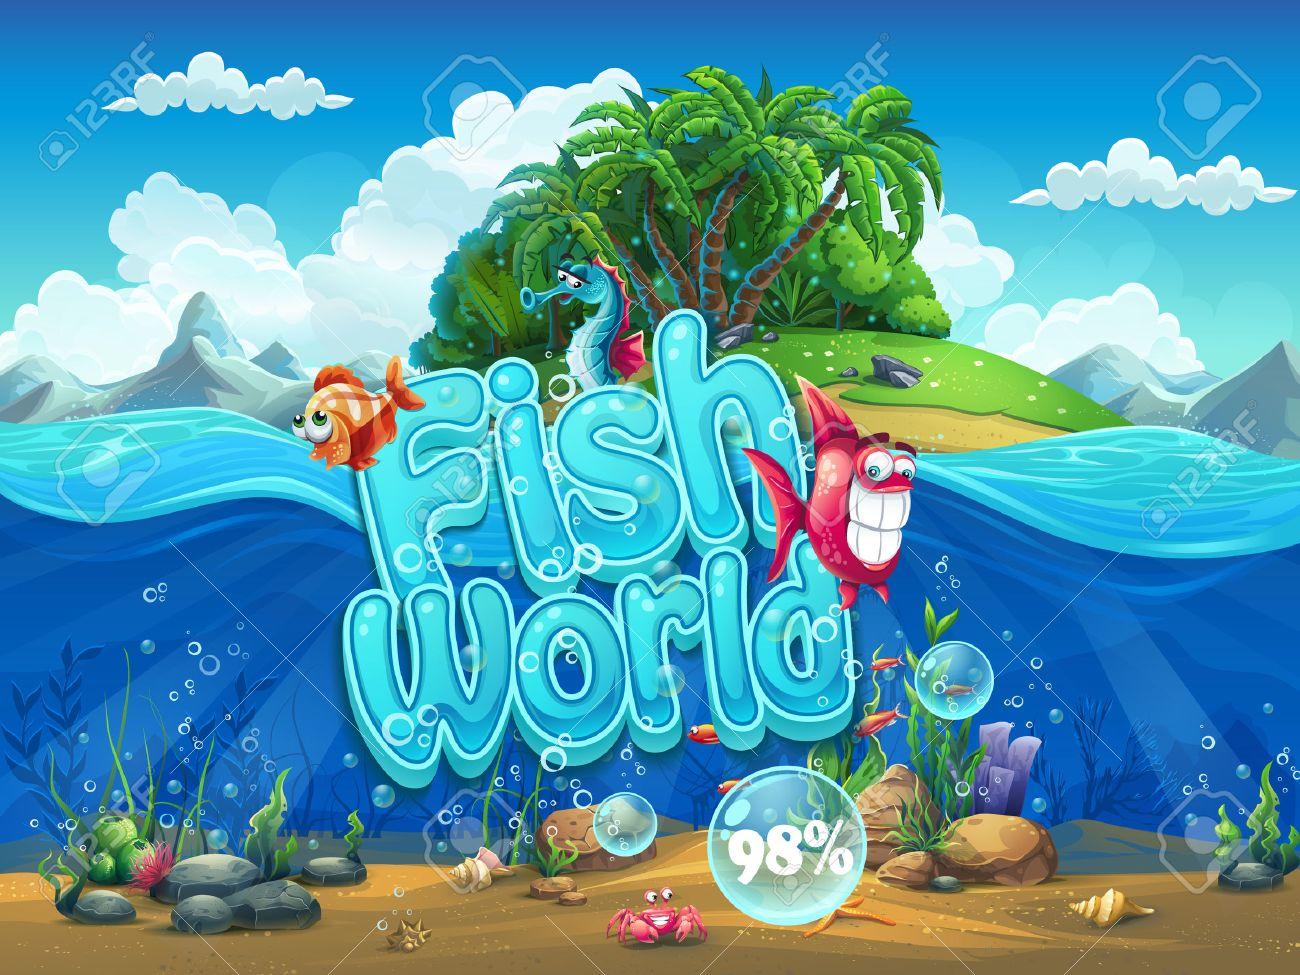 Fish World - Illustration boot screen to the computer game - 45918763